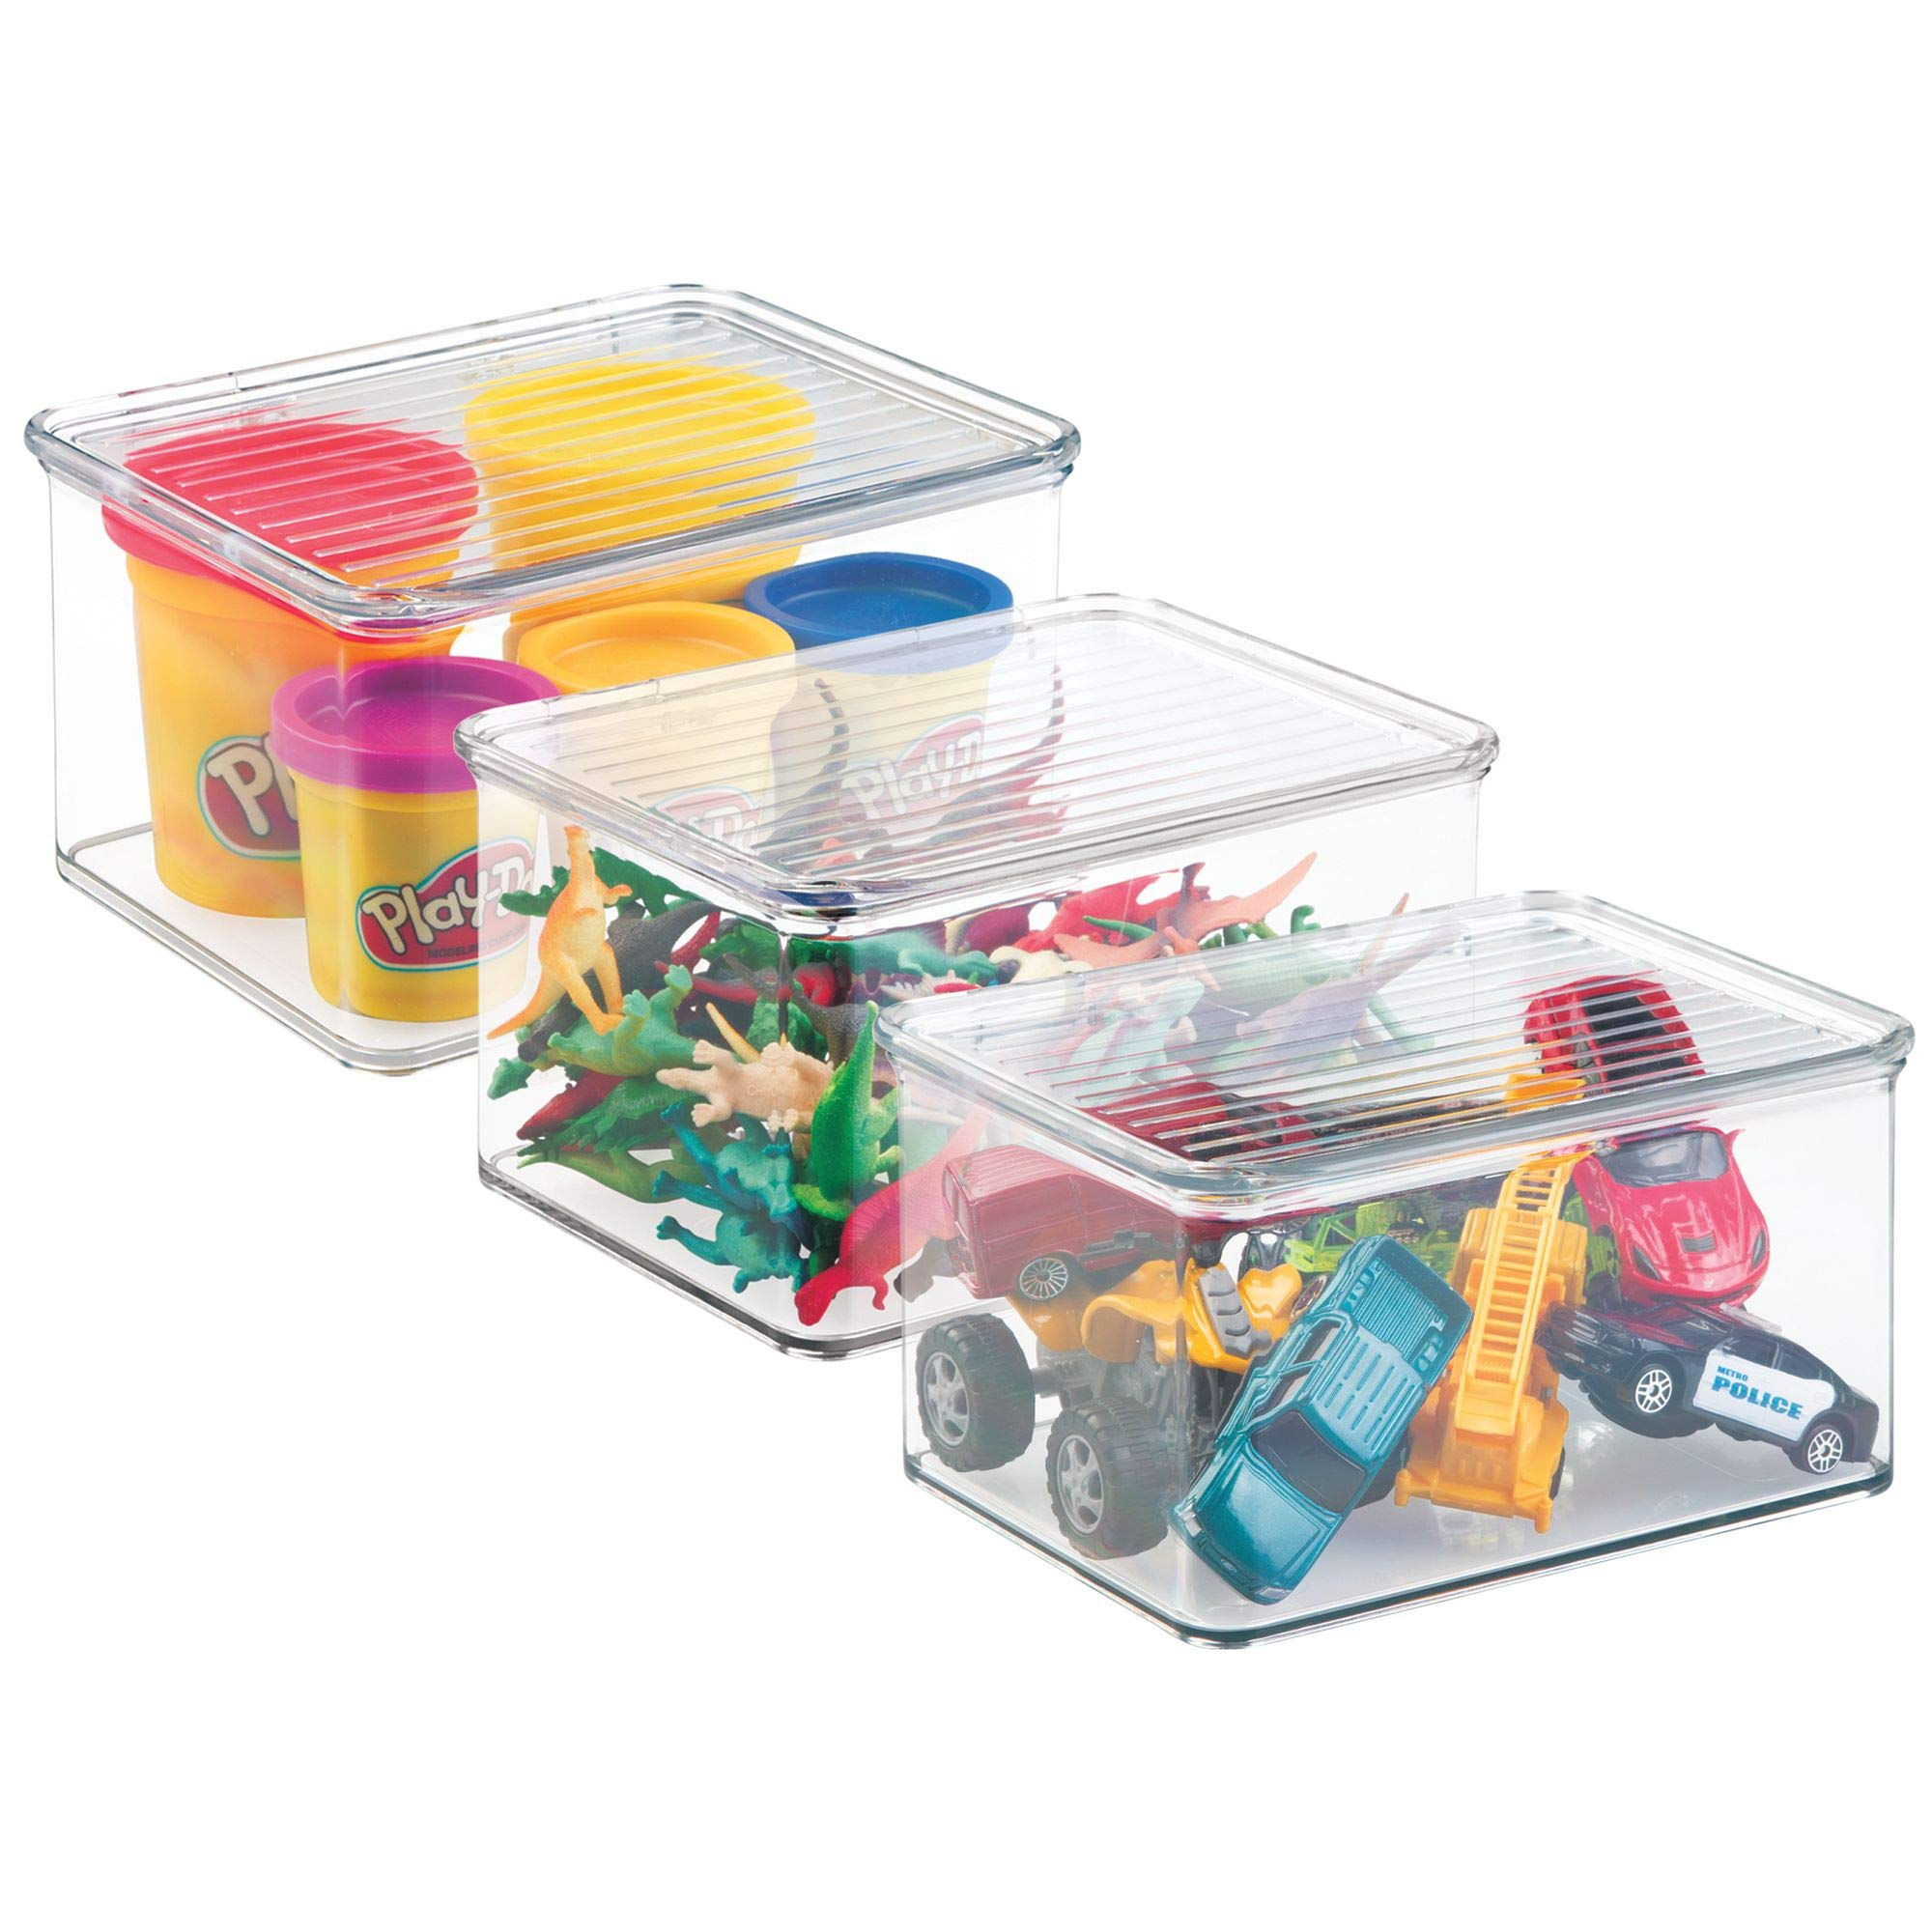 mDesign Kids Baby Cat Dog Small Plastic Stacking Toy Storage Organizer Box Case Containers with lid , for Action Figures, Crayons, Legos Puzzles Wood Blocks - 6.75'' x 5.5'' x 3.75'', Set of 3, Clear